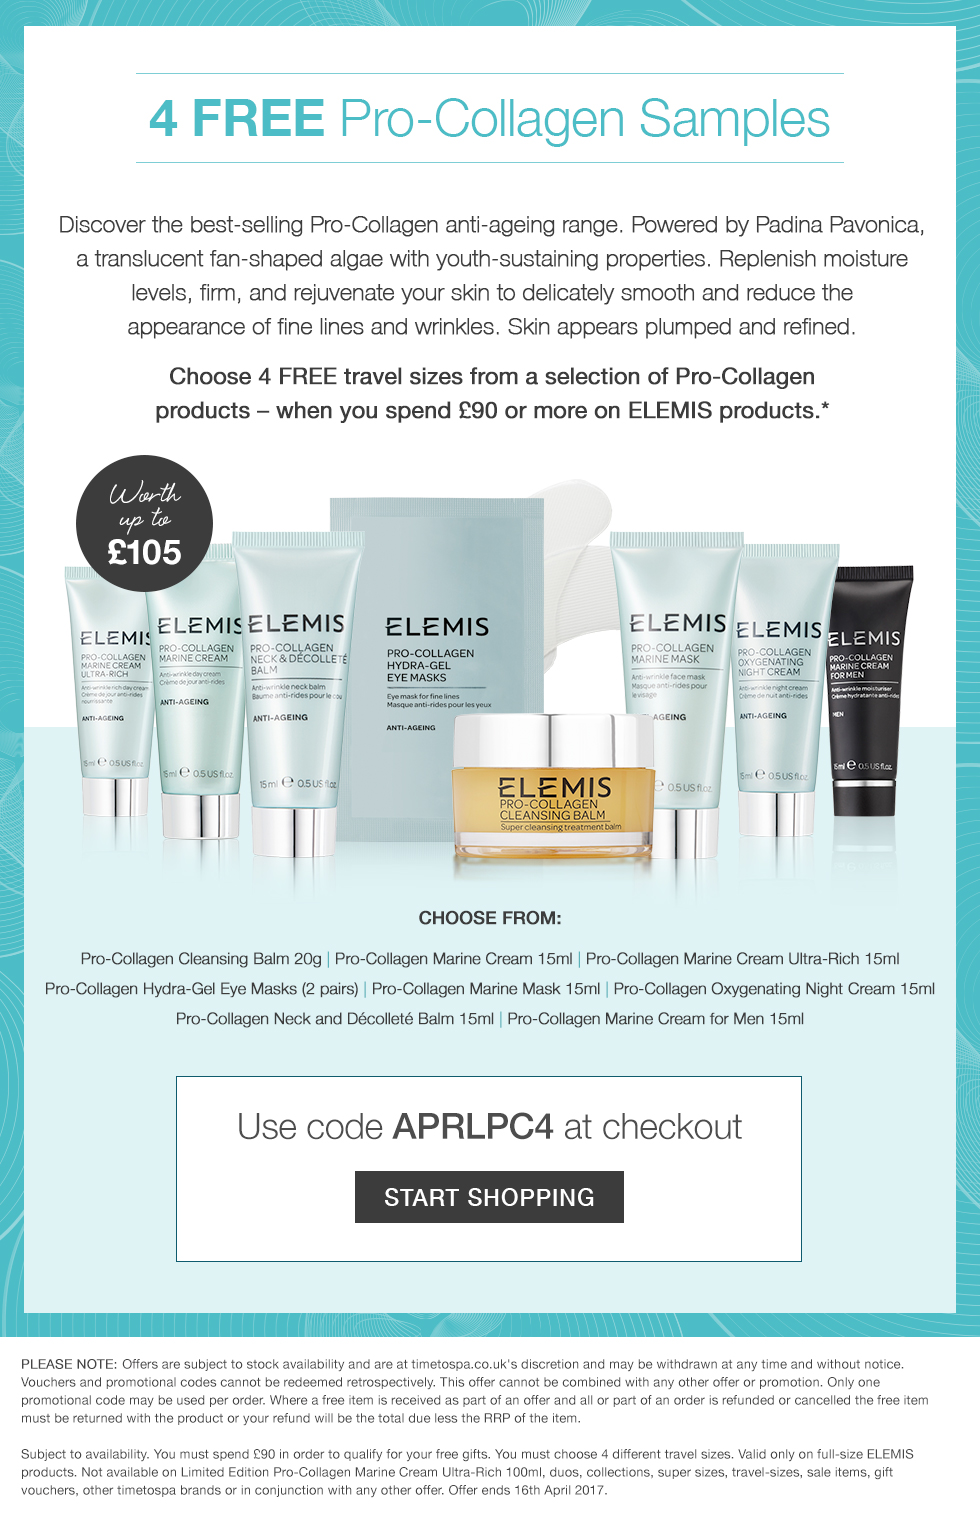 Free Pro-Collagen Gift Worth Up To £105